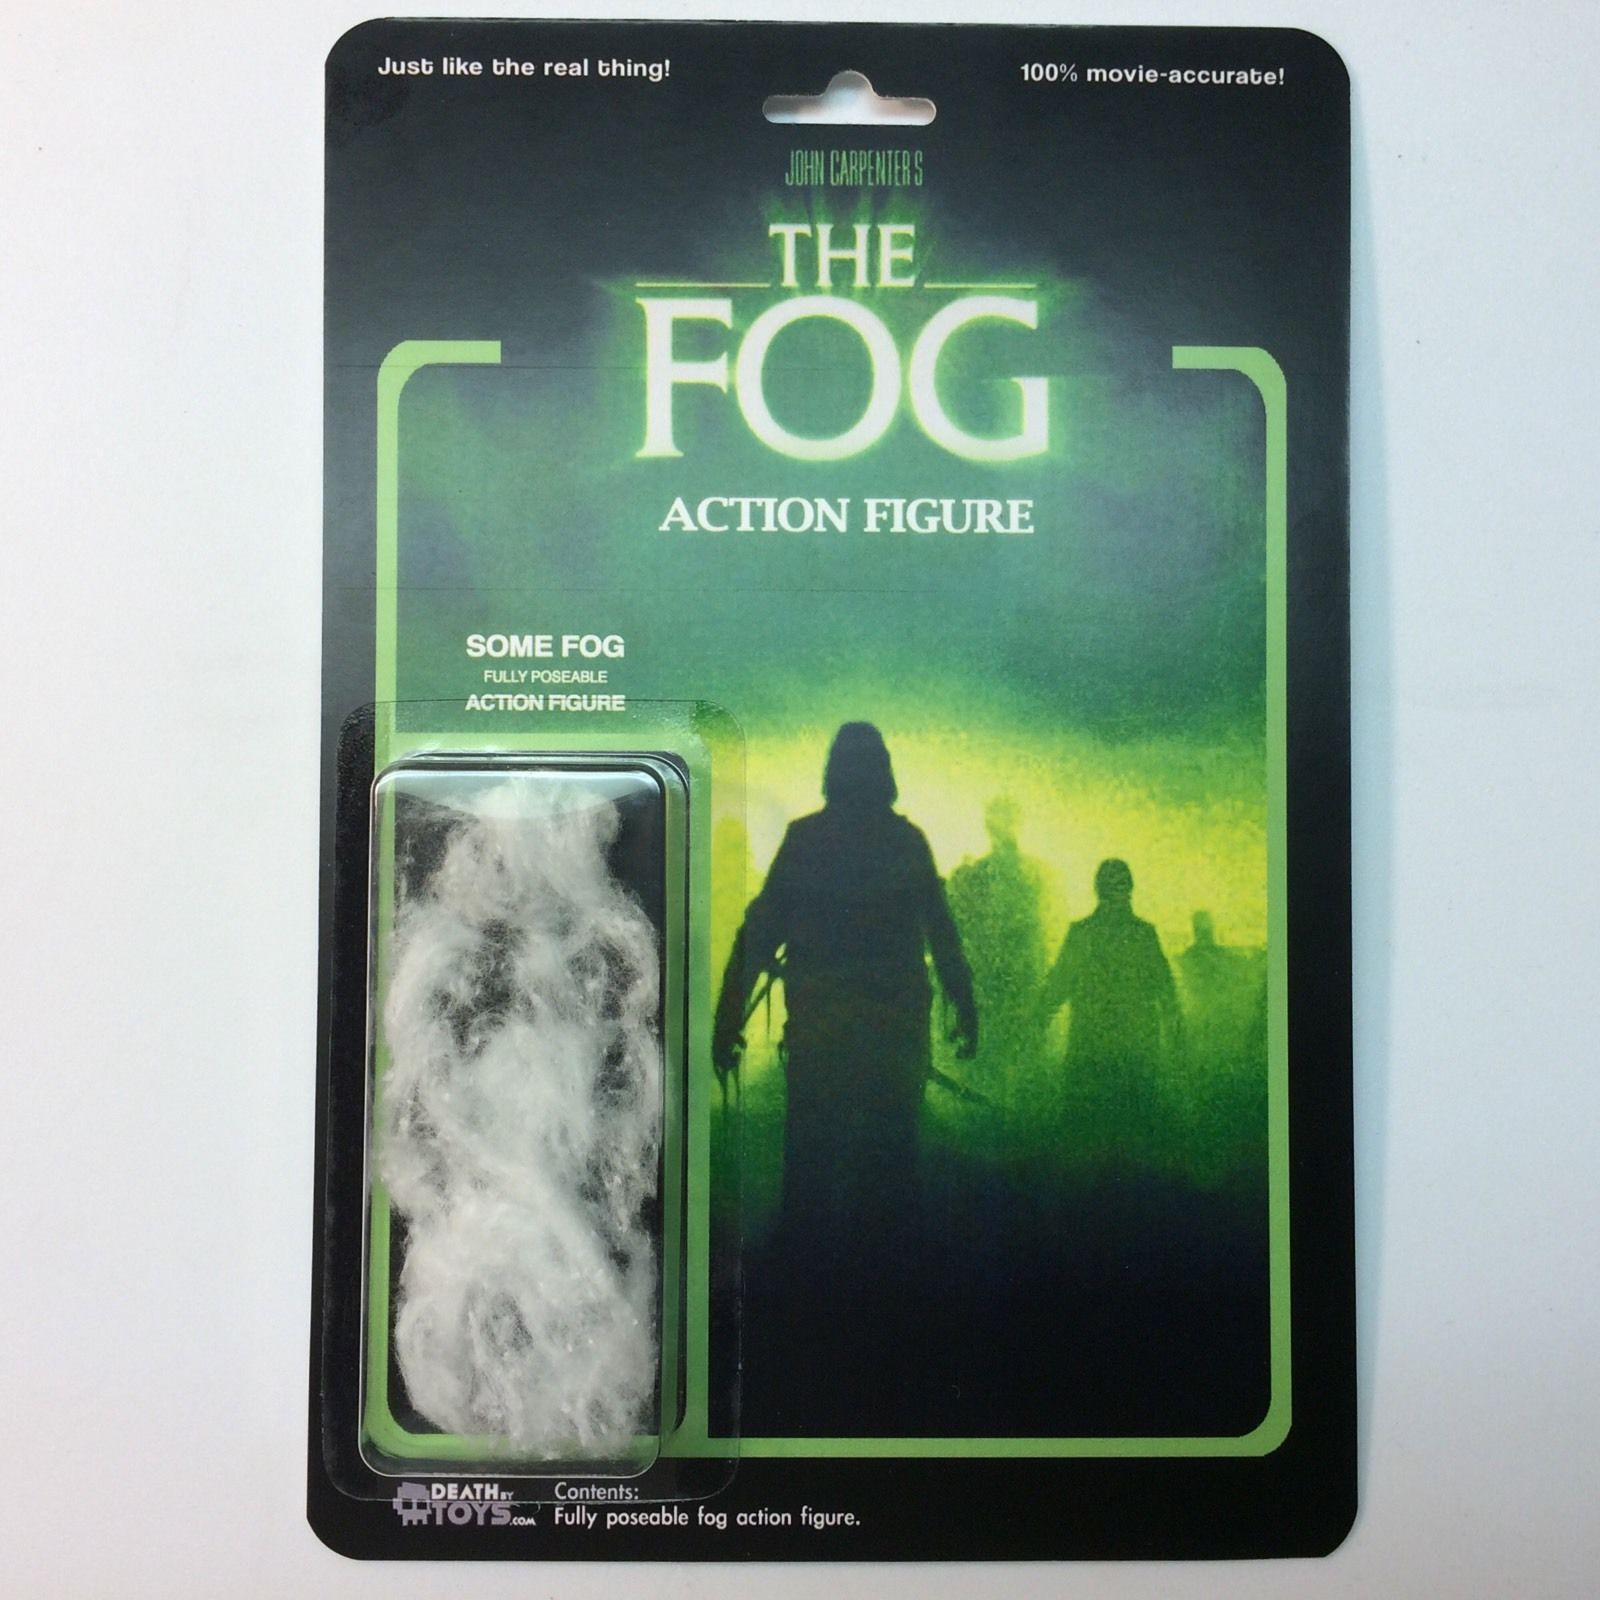 the fog 1 - Most Ridiculous Action Figure EVER - John Carpenter's The Fog